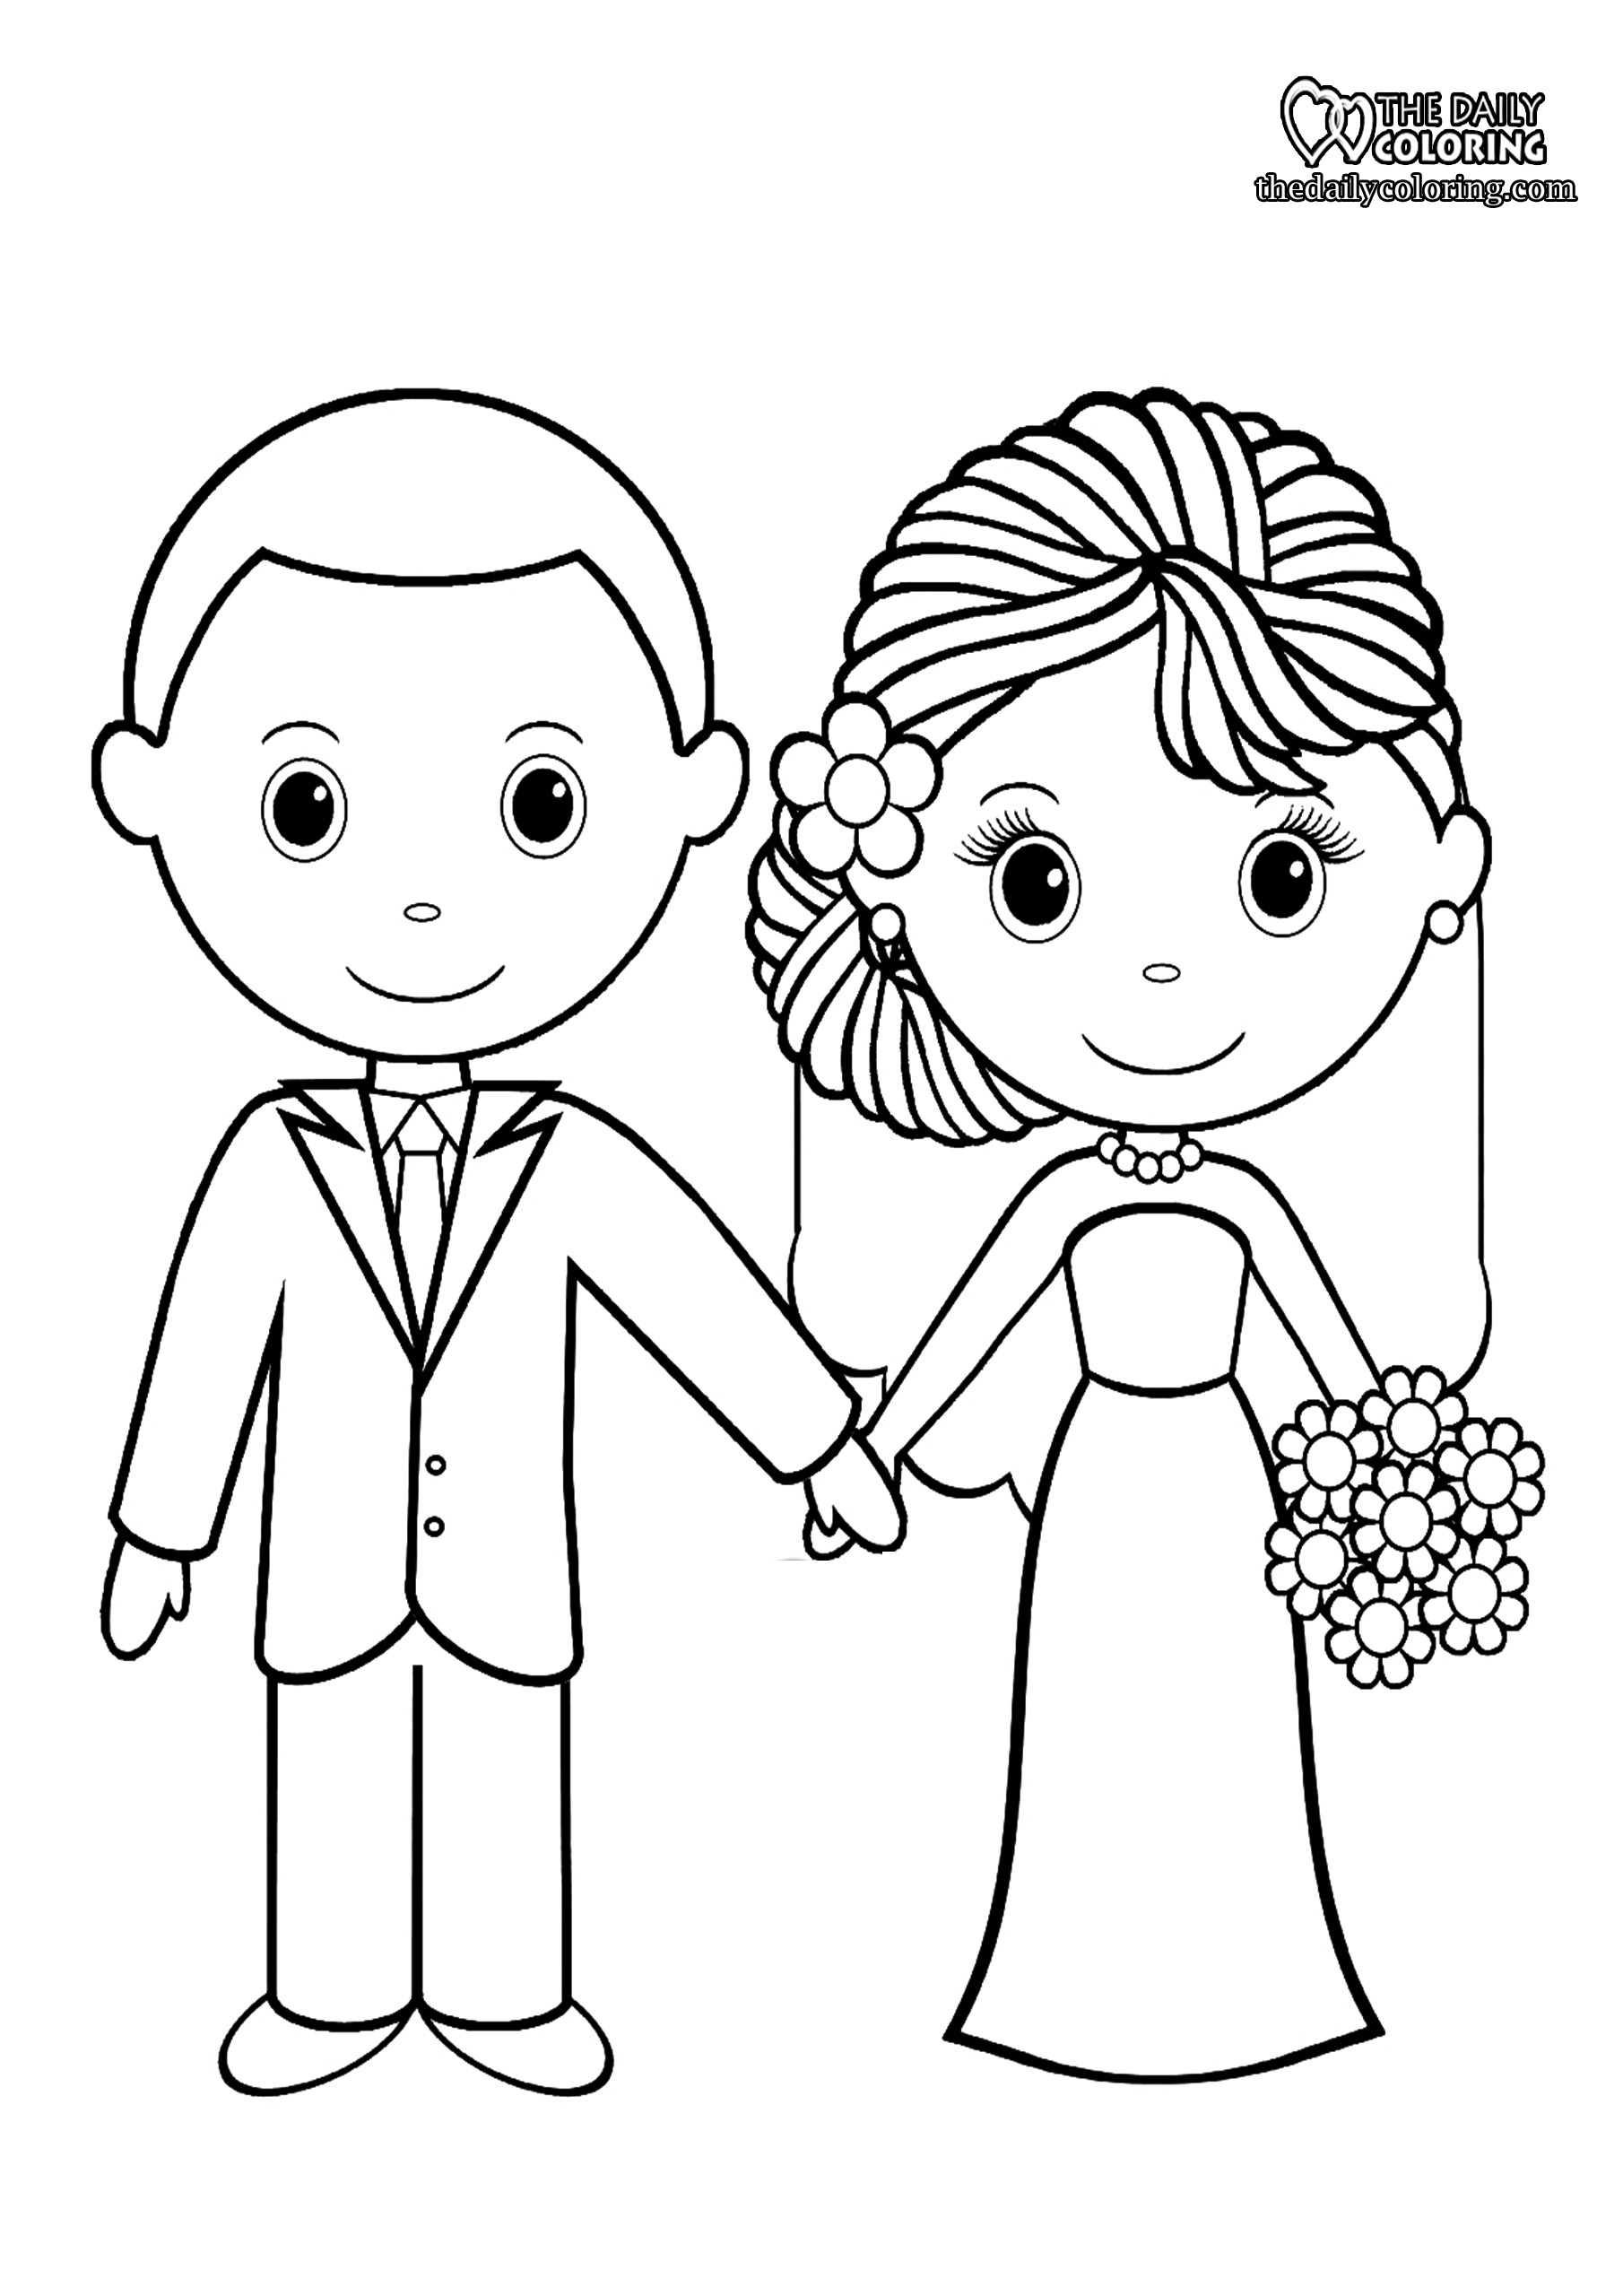 bride-and-groom-coloring-page